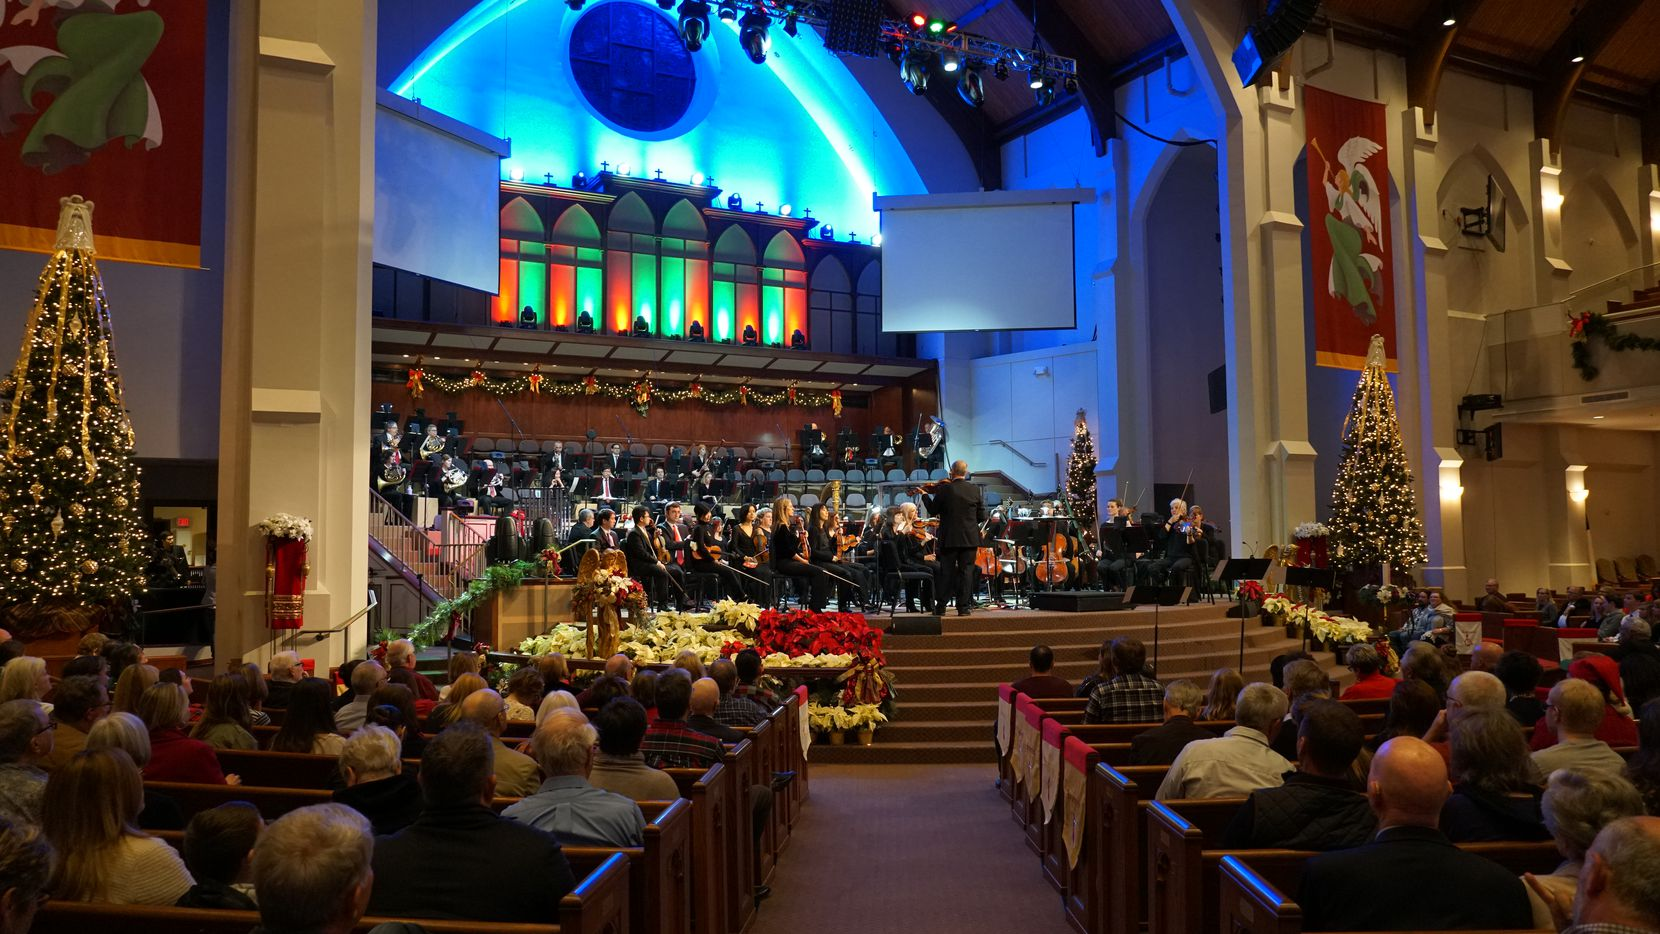 The Fort Worth Symphony Orchestra is returning to Southlake to present its annual holiday concert at White's Chapel United Methodist Church. COVID-19 precautions will be in place.